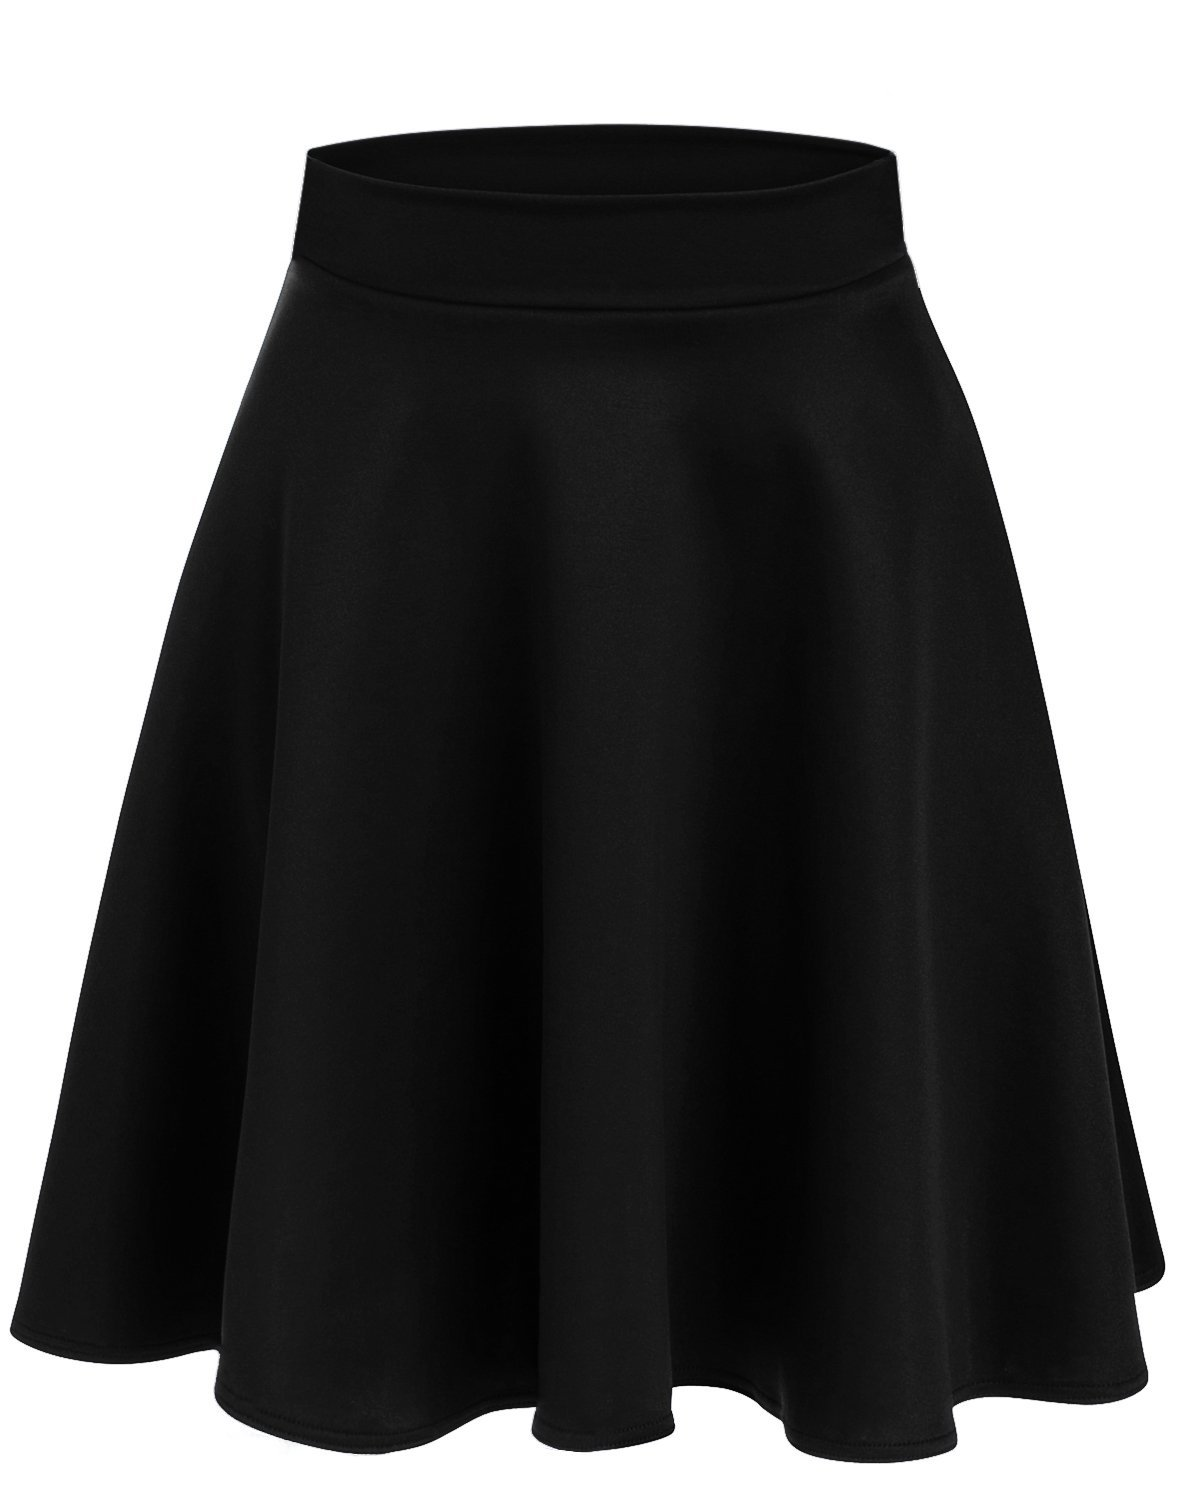 Simlu A Line Midi Skirt Flared and Pleated Midi Skirt for Women - Made in USA, Black, Large